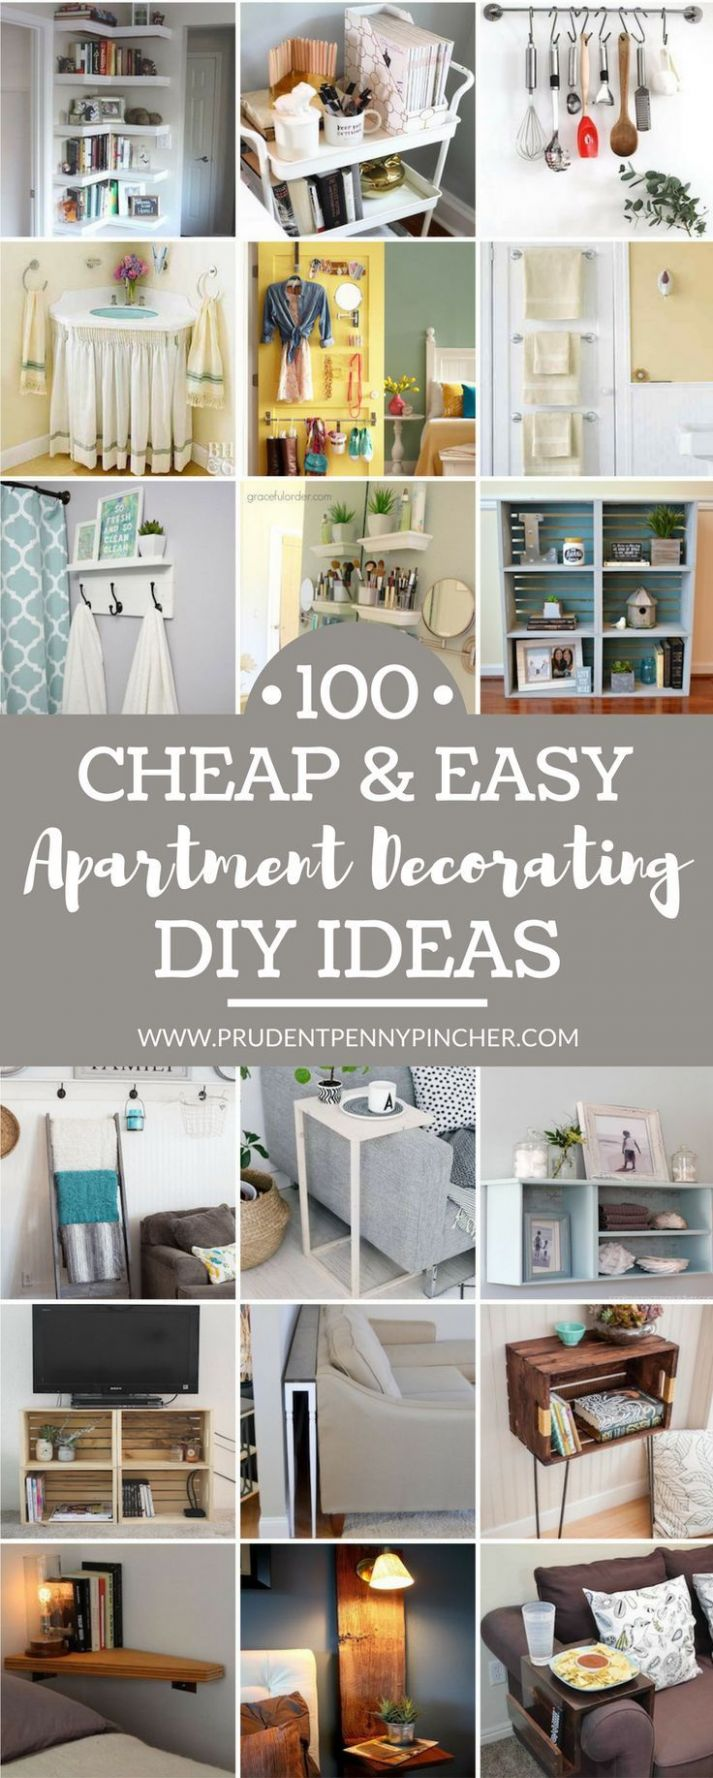 10 Cheap and Easy DIY Apartment Decorating Ideas | Diy apartment ..